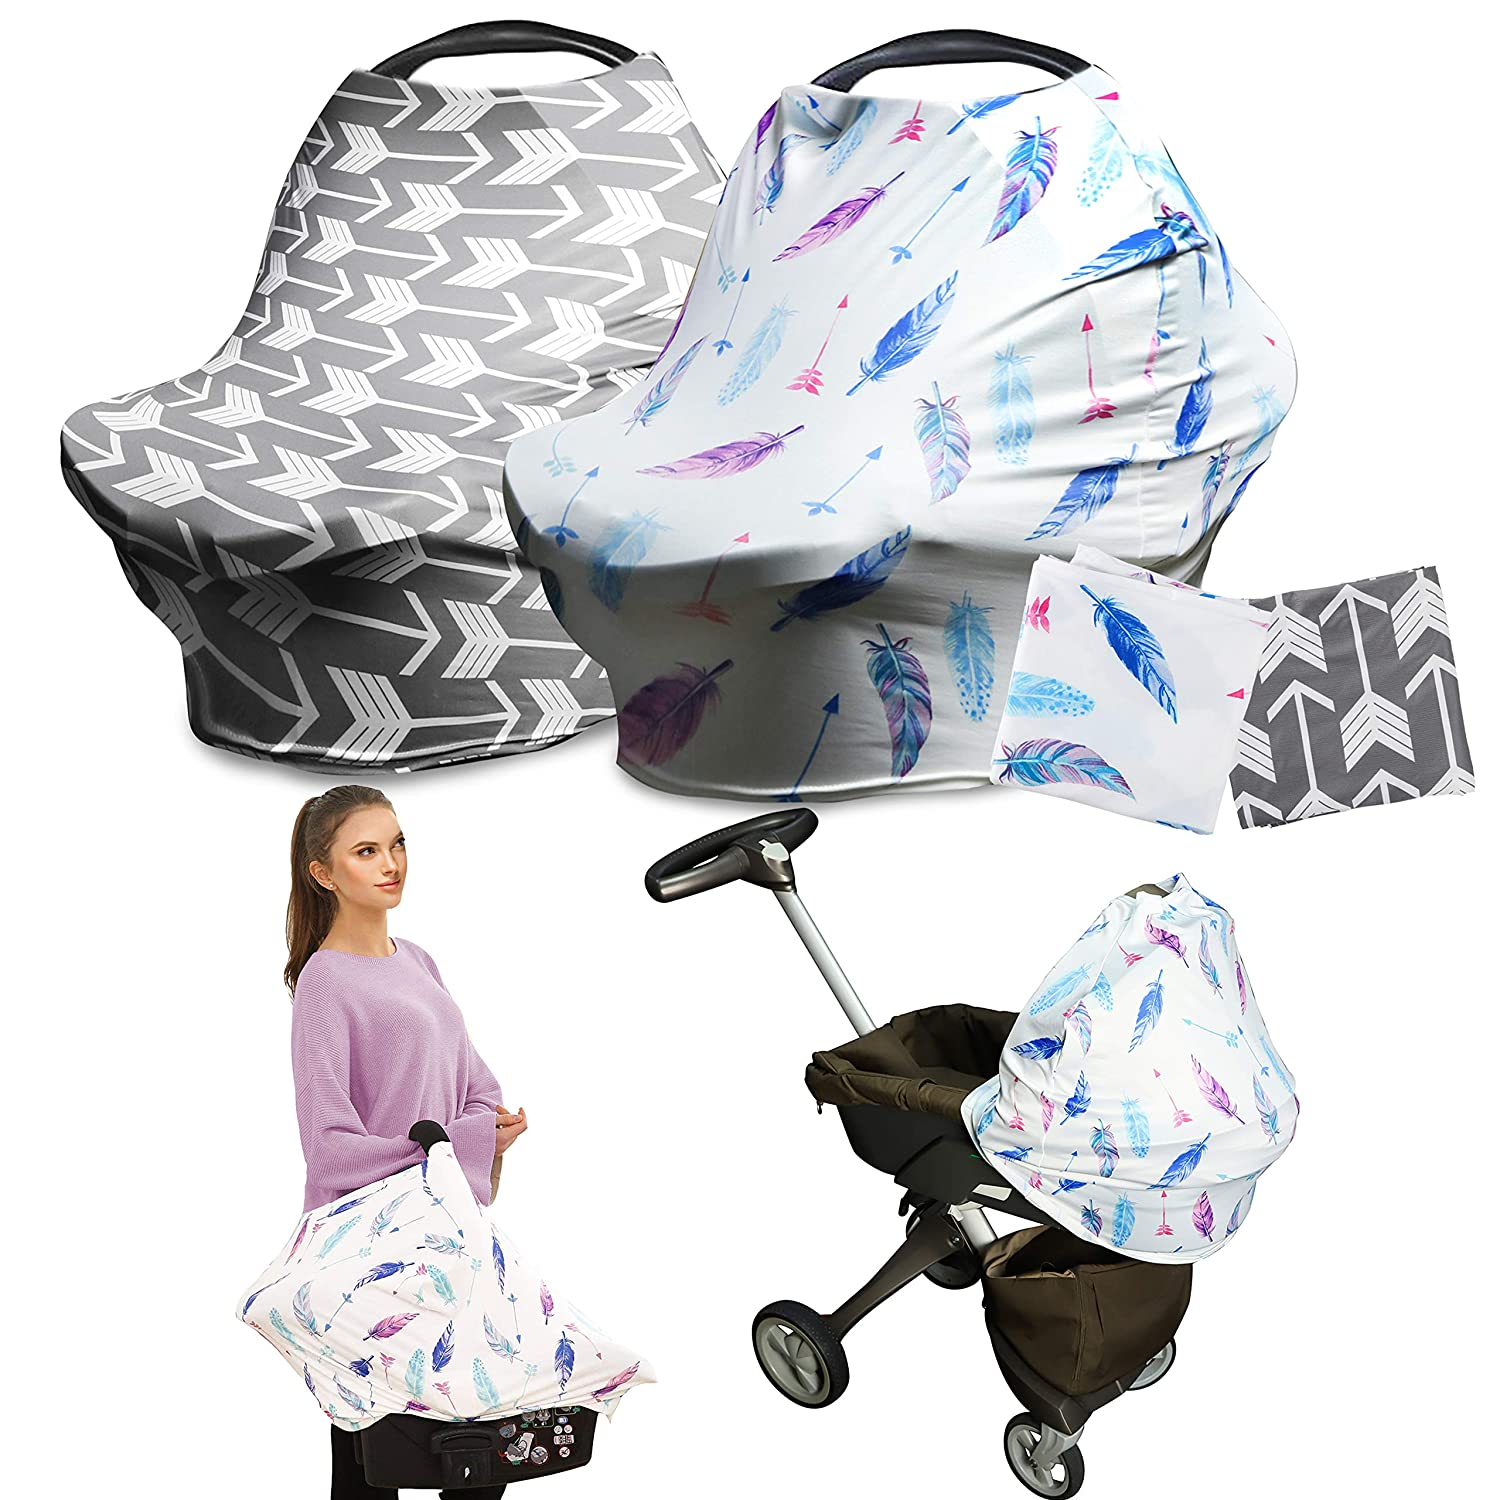 R.HORSE 2 PACK Nursing Breastfeeding Cover Scarf - Baby Car Seat Canopy, Shopping Cart, Stroller, Carseat Covers for Girls and Boys - Best Multi-Use Infinity Stretchy Shawl (Classical Arrows+ Feather)